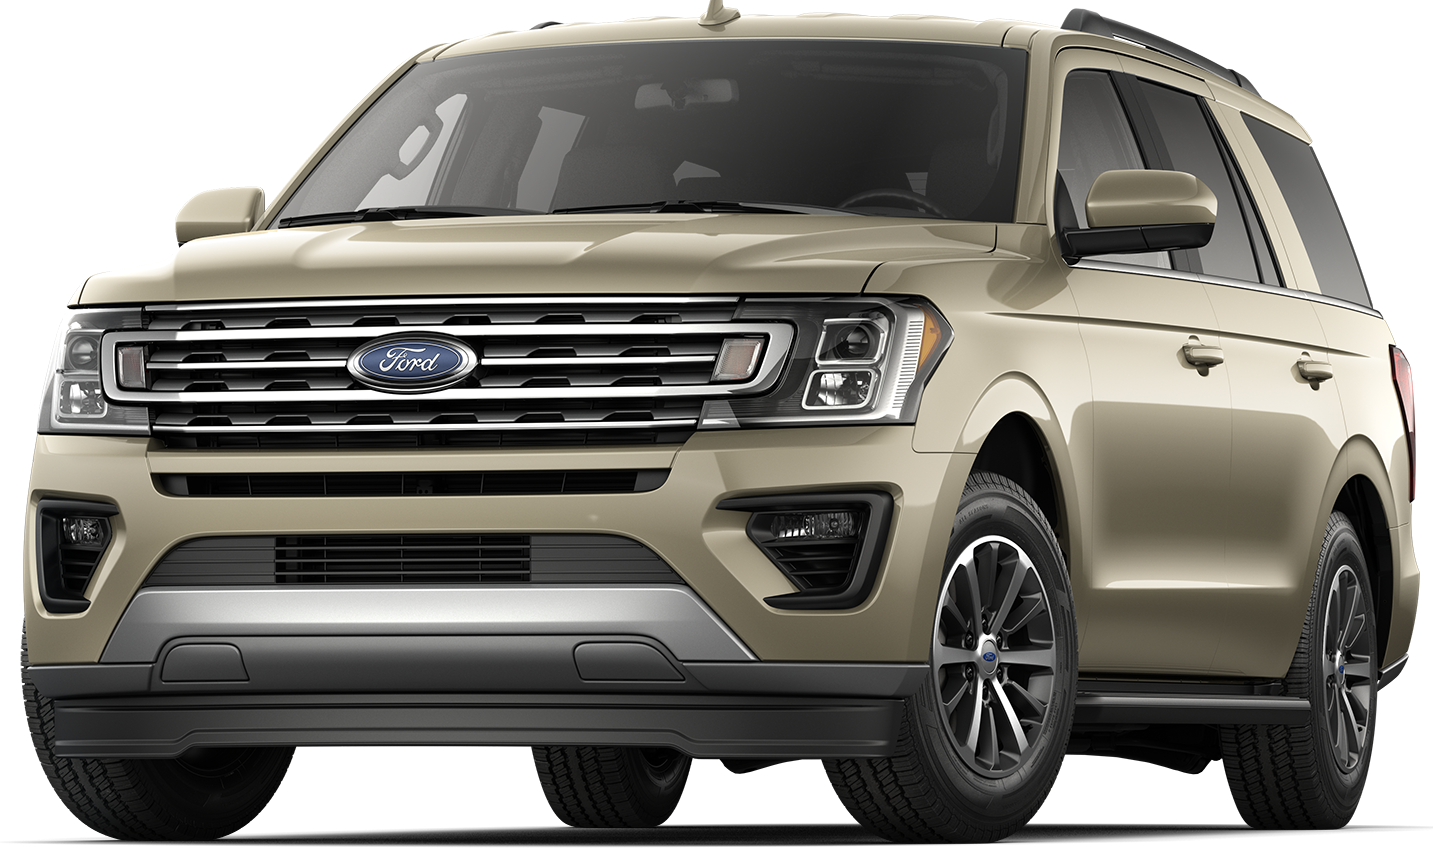 Wilson Motors Corvallis >> The 2019 Ford SUV Line-Up in Corvallis OR | Wilson Motors